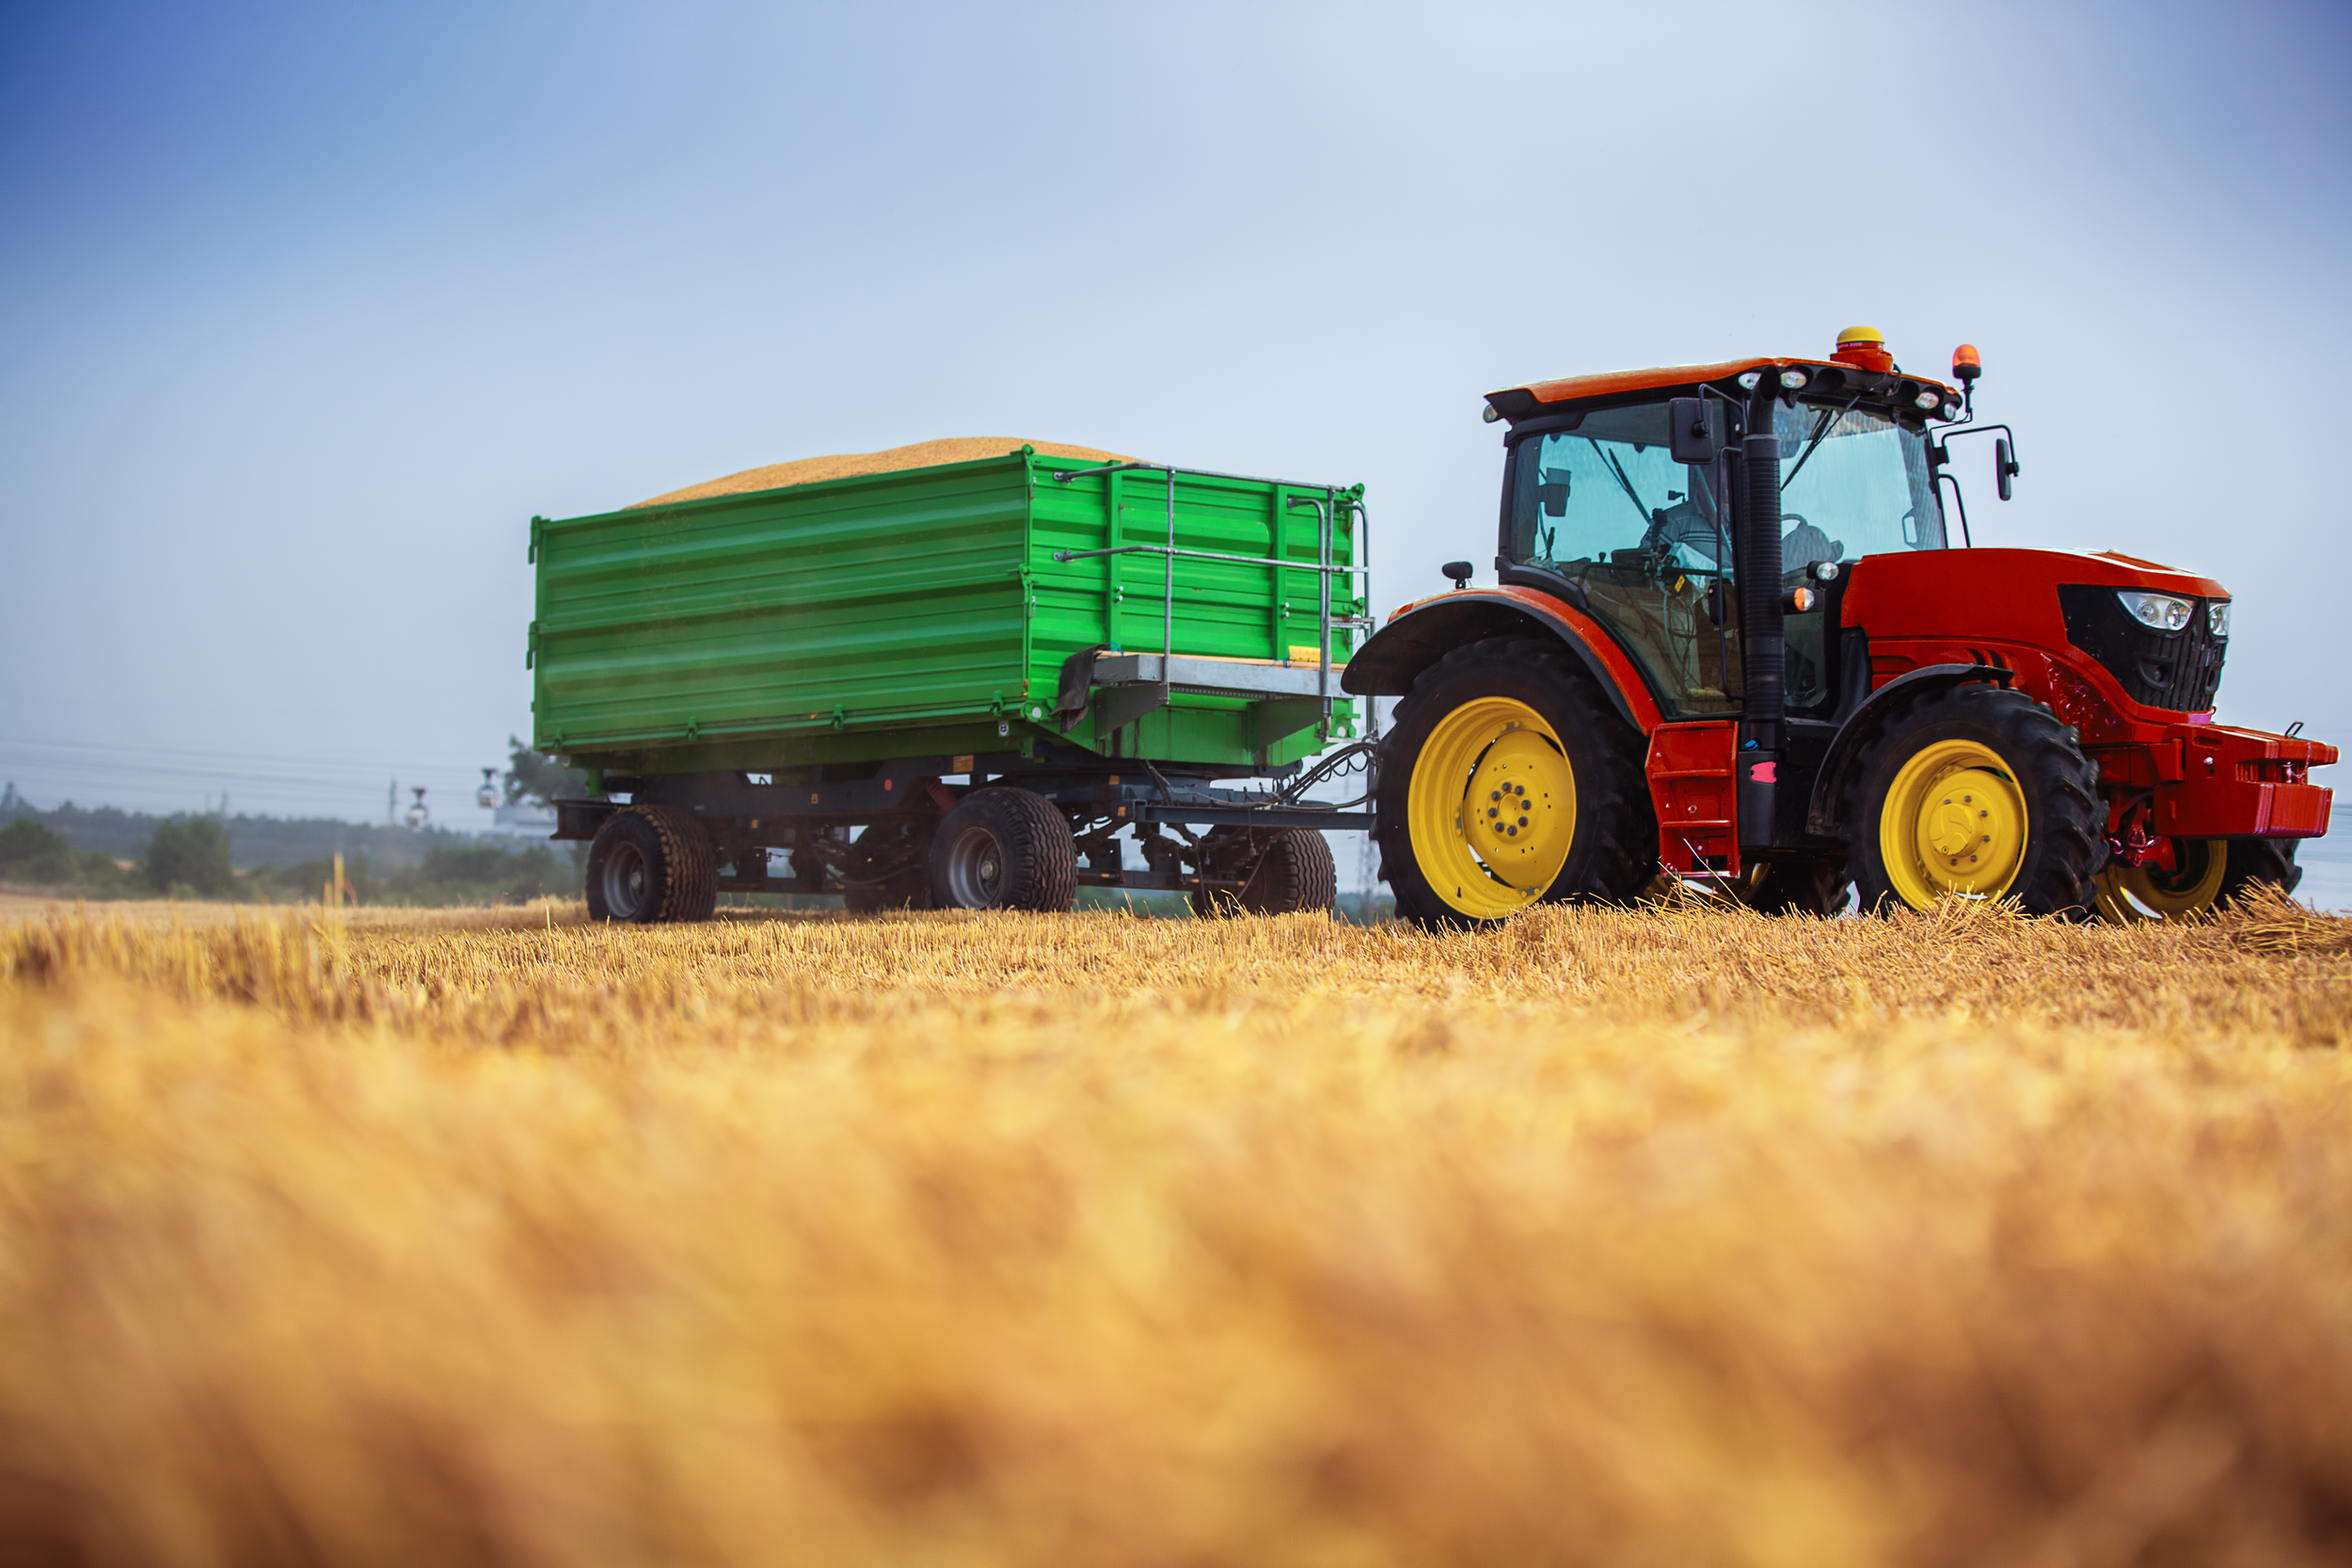 Track the location of your agriculture equipment with Ready Asset Tracking's gps tracking devices